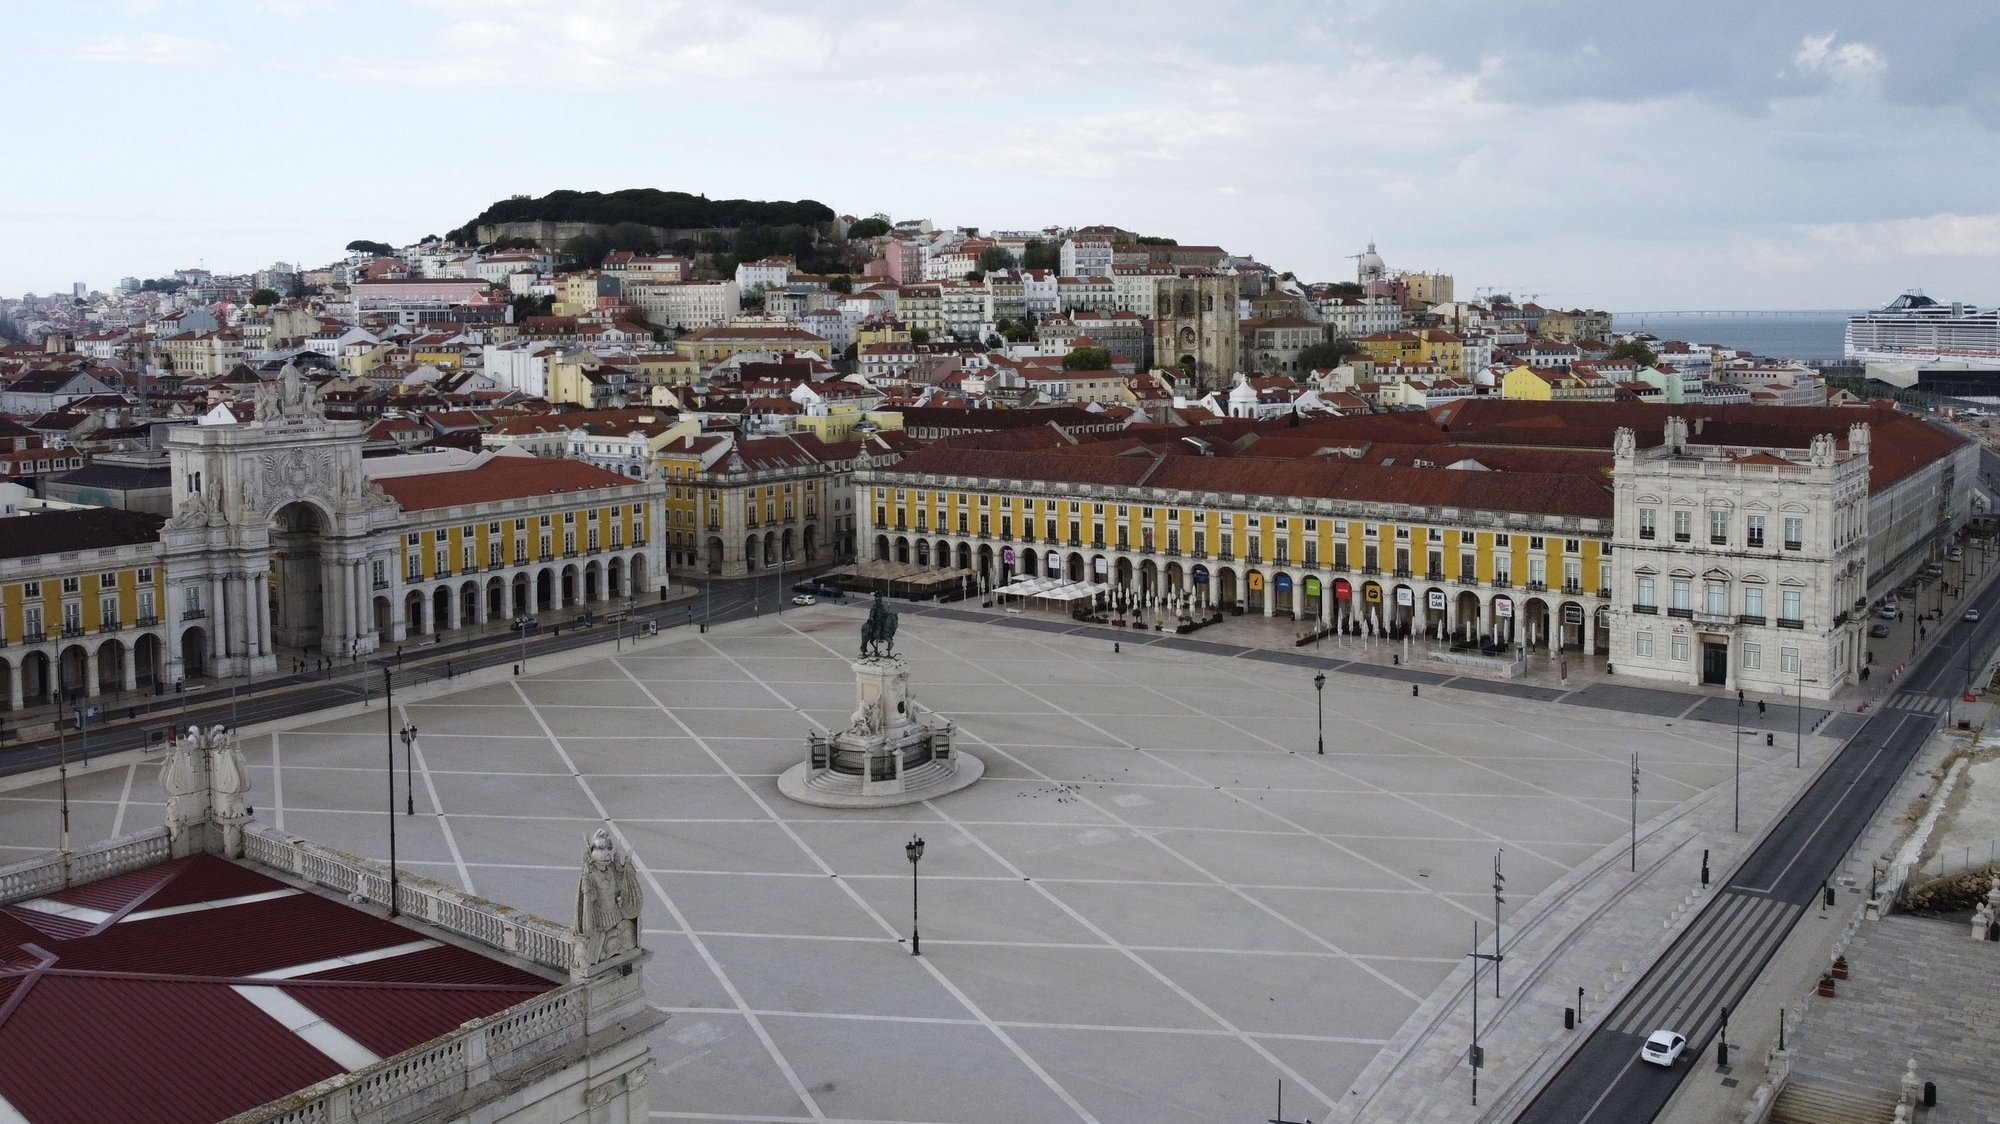 Aerial view of the Praça do Comercio square  in Lisbon, Portugal, 25 March 2020. In Portugal the new coronavirus,COVID-19   is responsible for the  33 deaths and 2,362 confirmed infections, according to the balance made today by the Directorate General of Health. Portugal is in a state of emergency since 00:00 on Thursday and until 23:59 on 02 April. ANTÓNIO COTRIM/LUSA